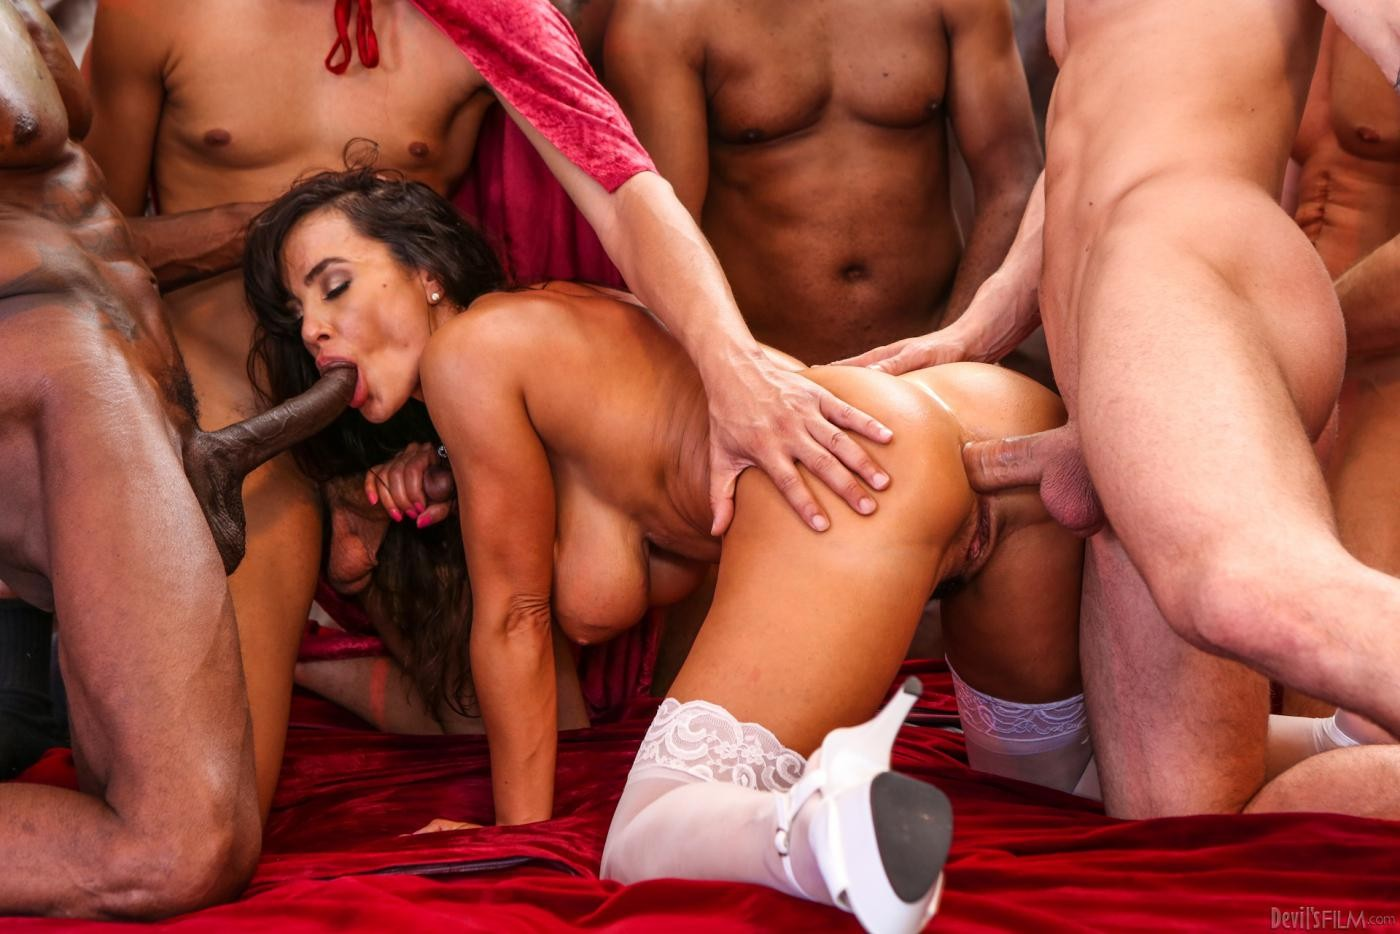 The world biggest anal gang bang, young granaughter showing grandpa about sex